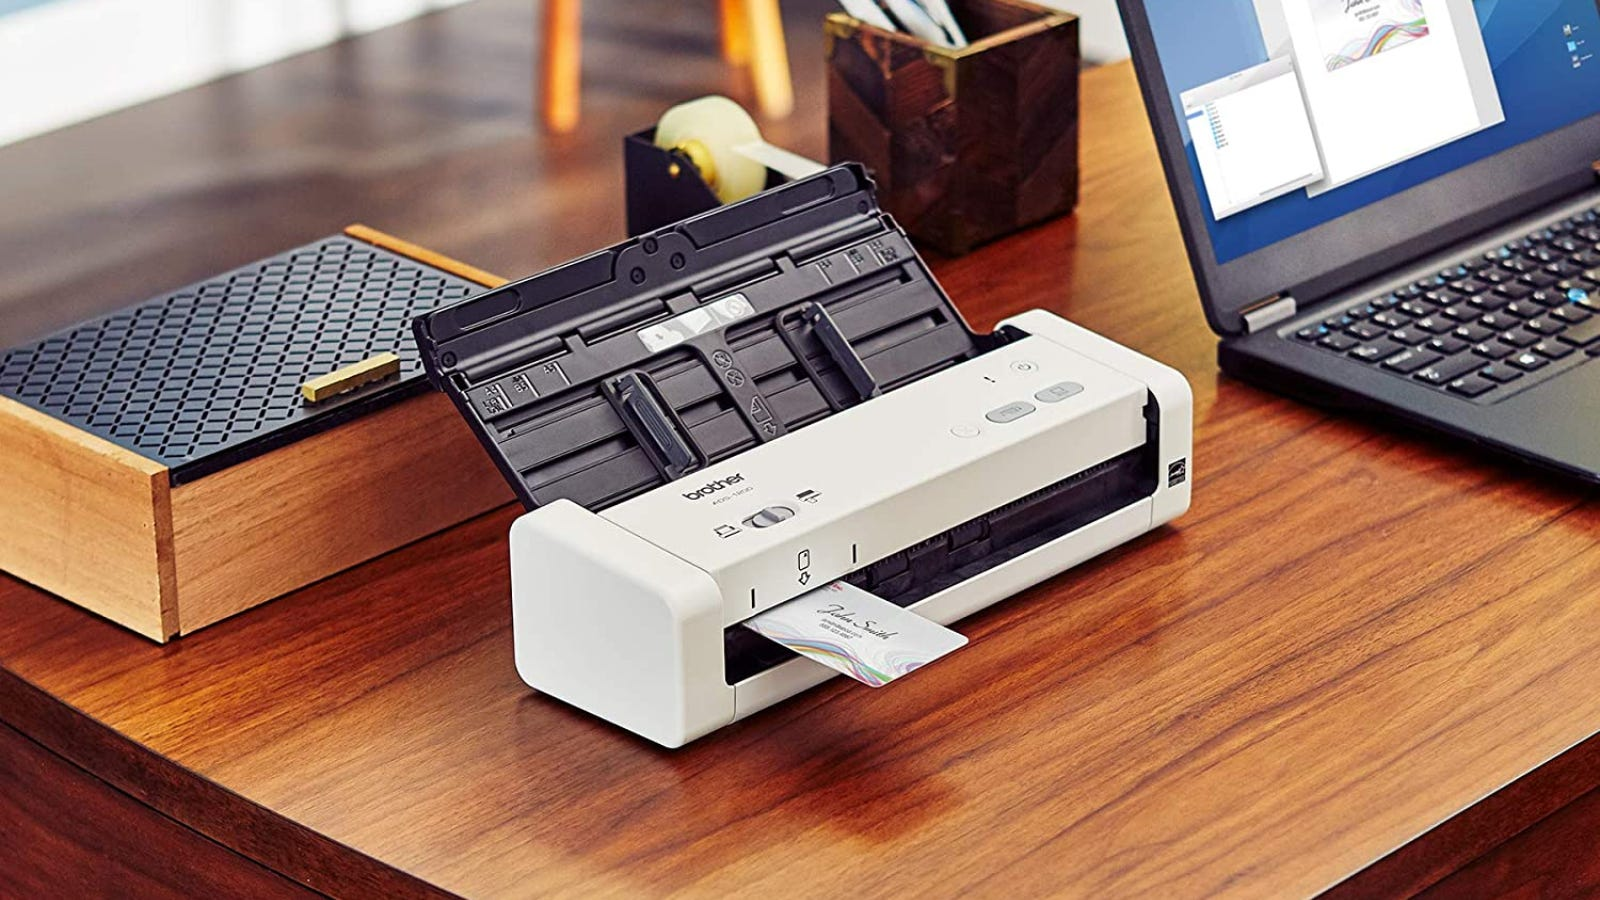 A document scanner sitting on a wooden desk next to a laptop.